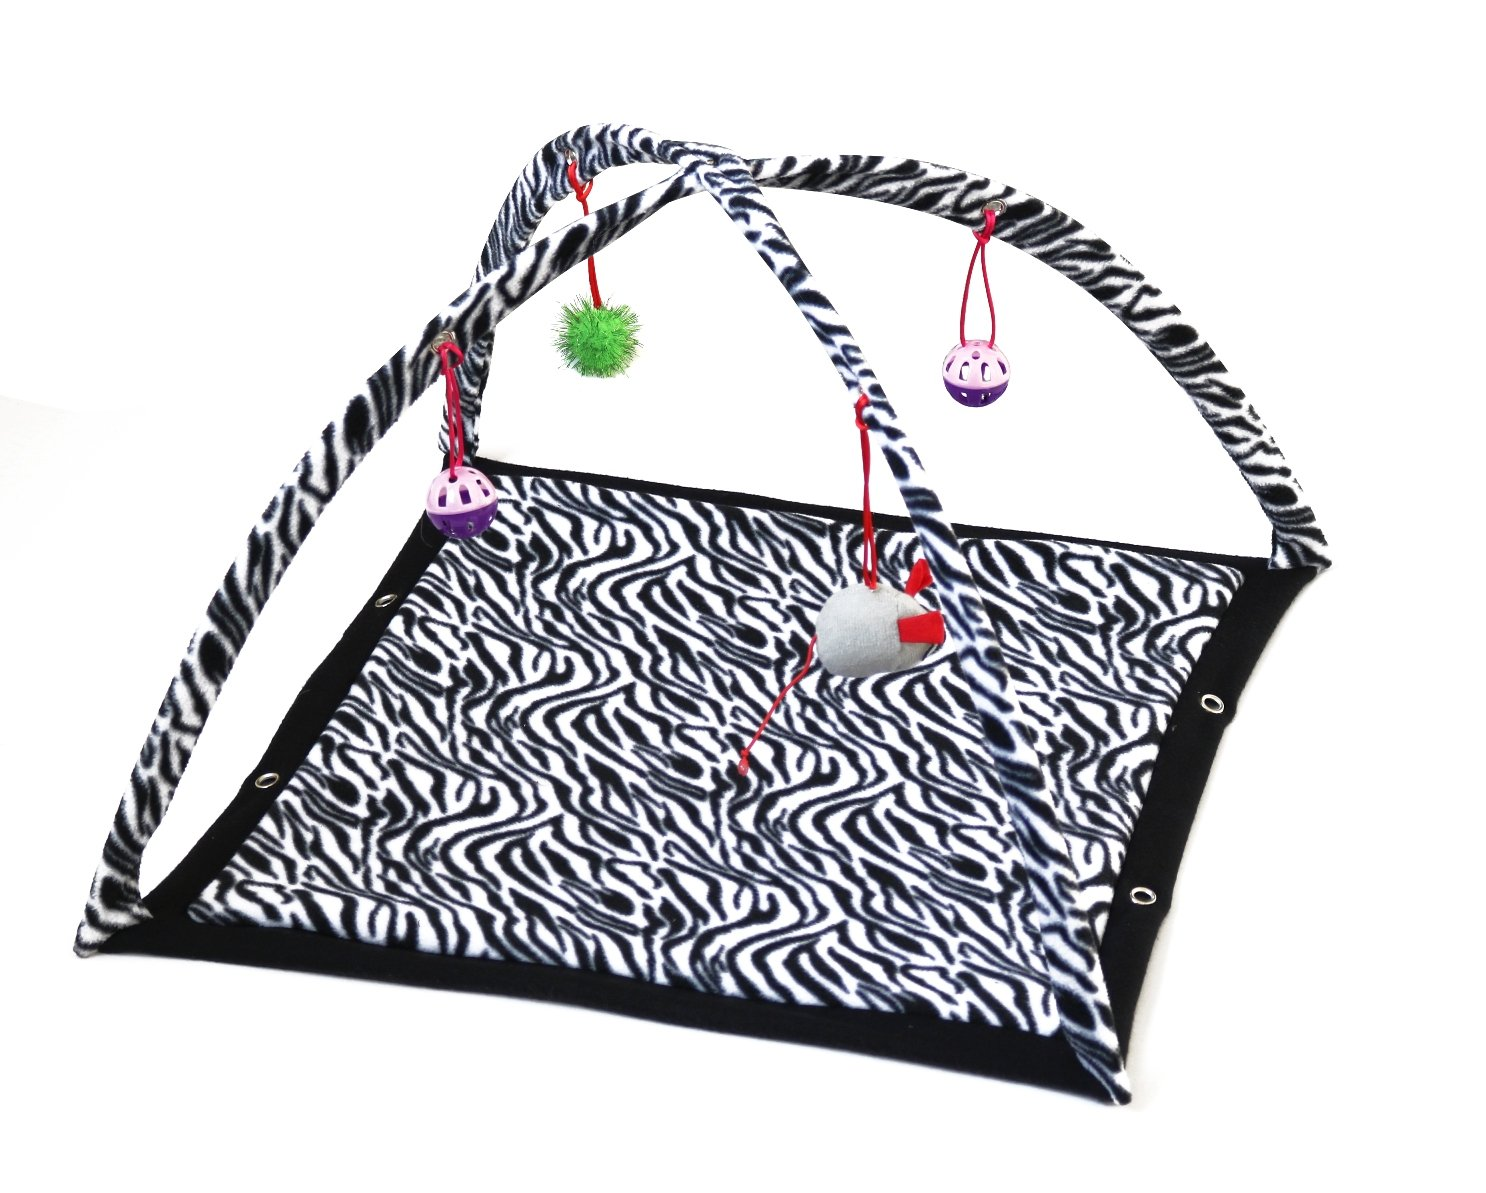 HappyCare Textiles Cat Activity Center Tent with Hanging Toy, 21  x 14 , Black White